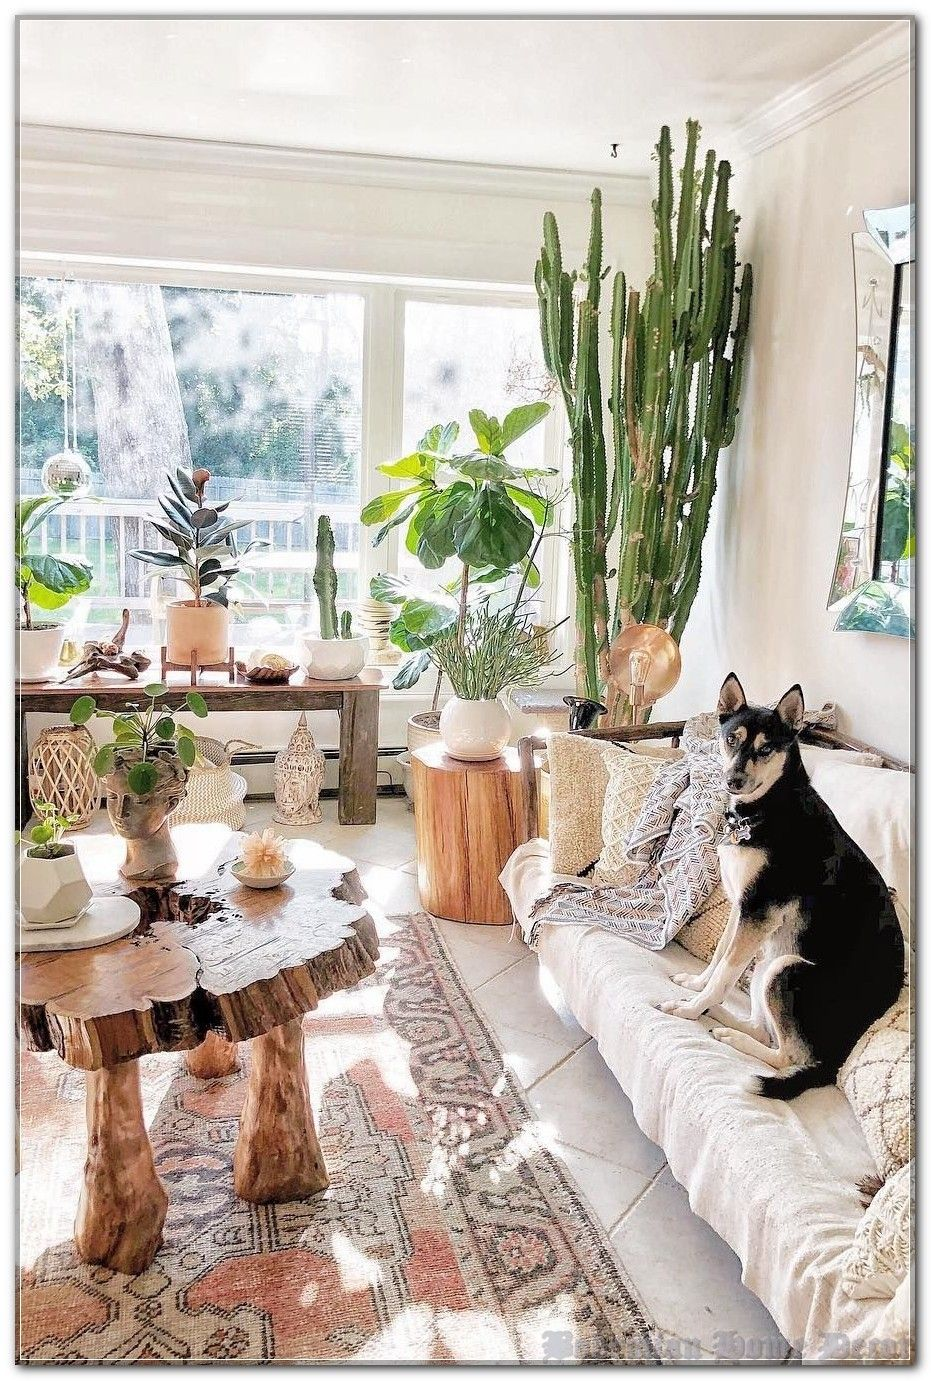 Bohemian Home Decor And The Art Of Time Management